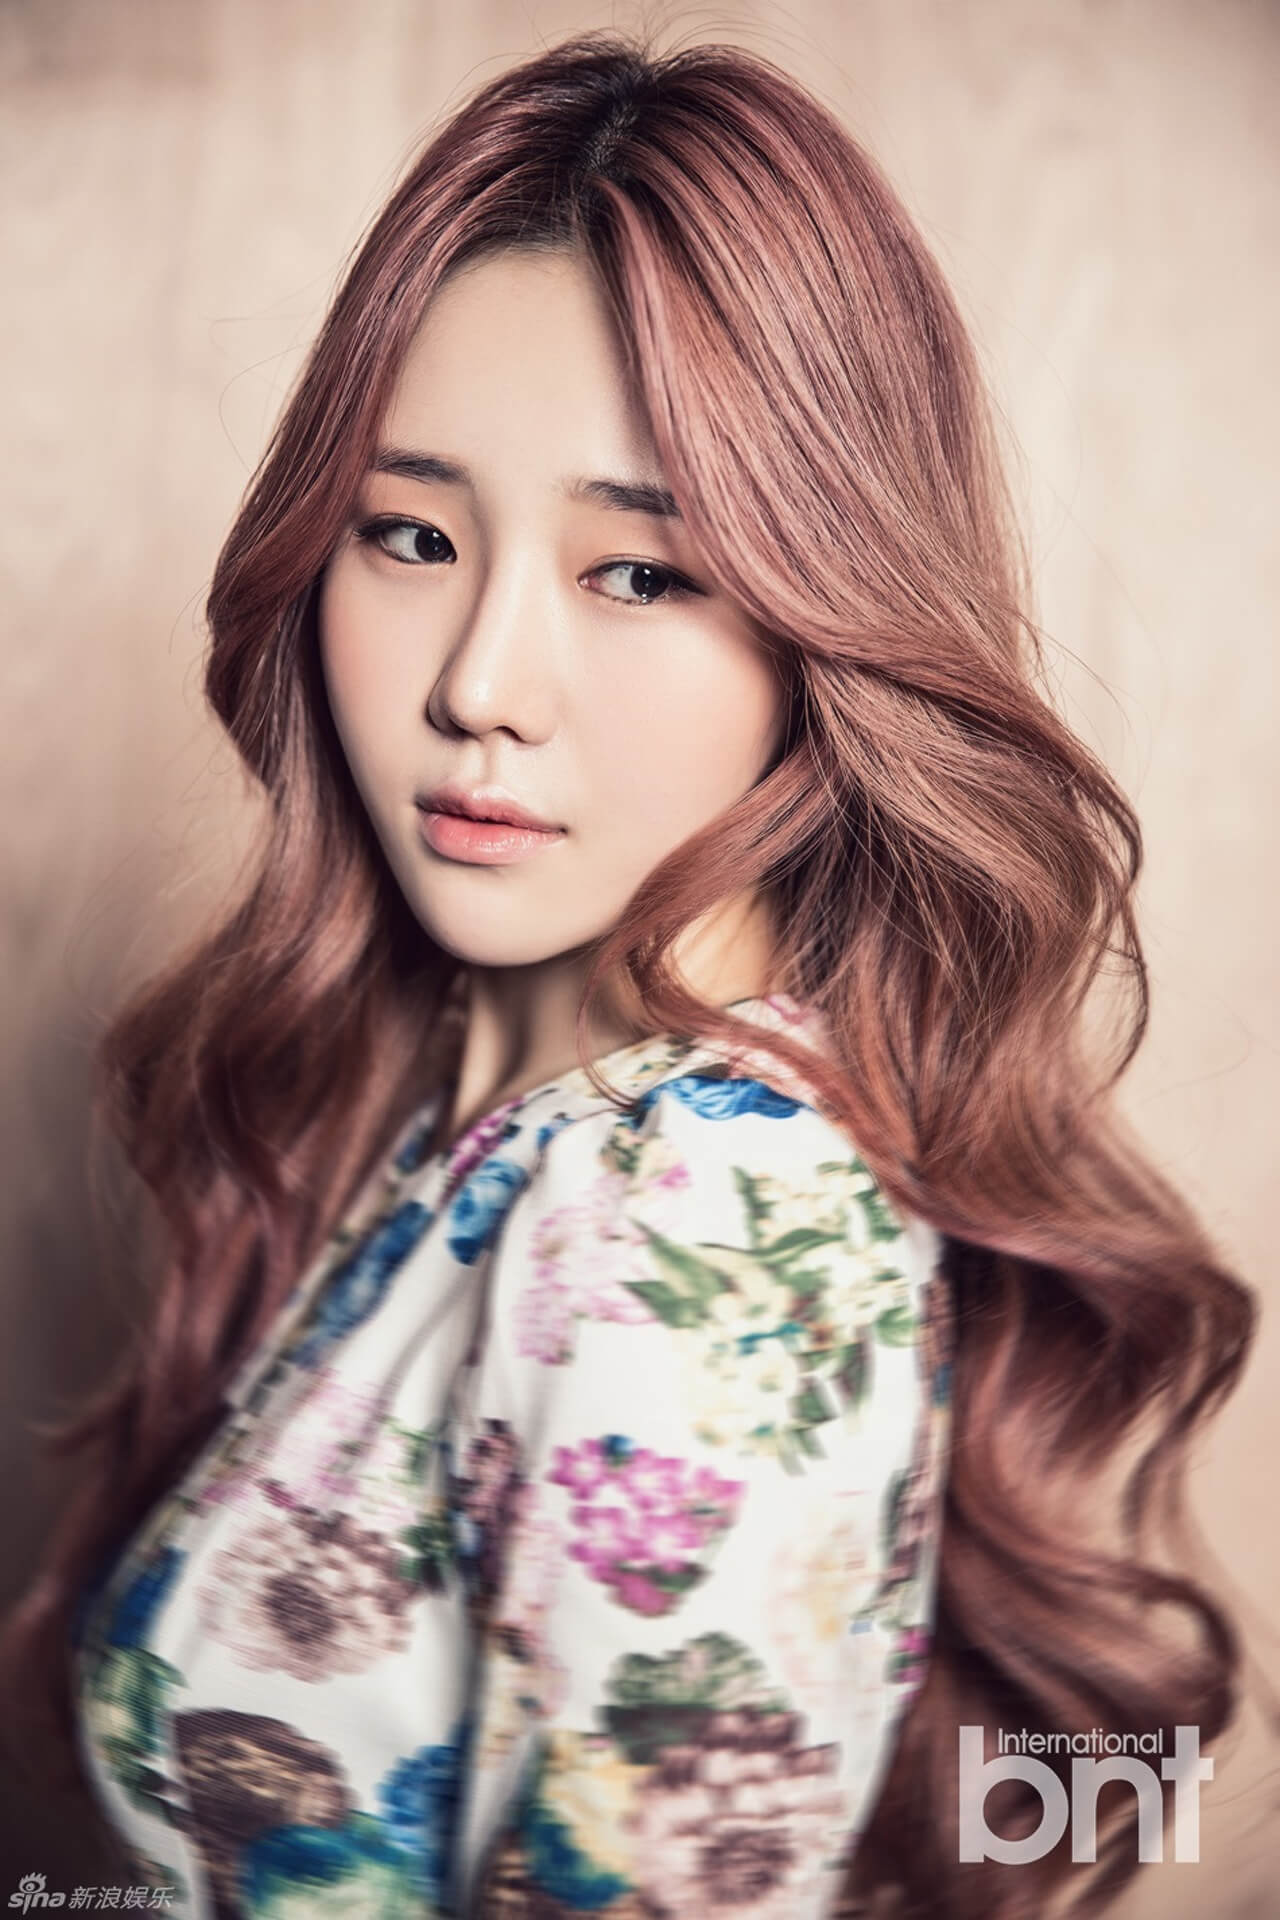 Jiyul – Dal Shabet hot hairs